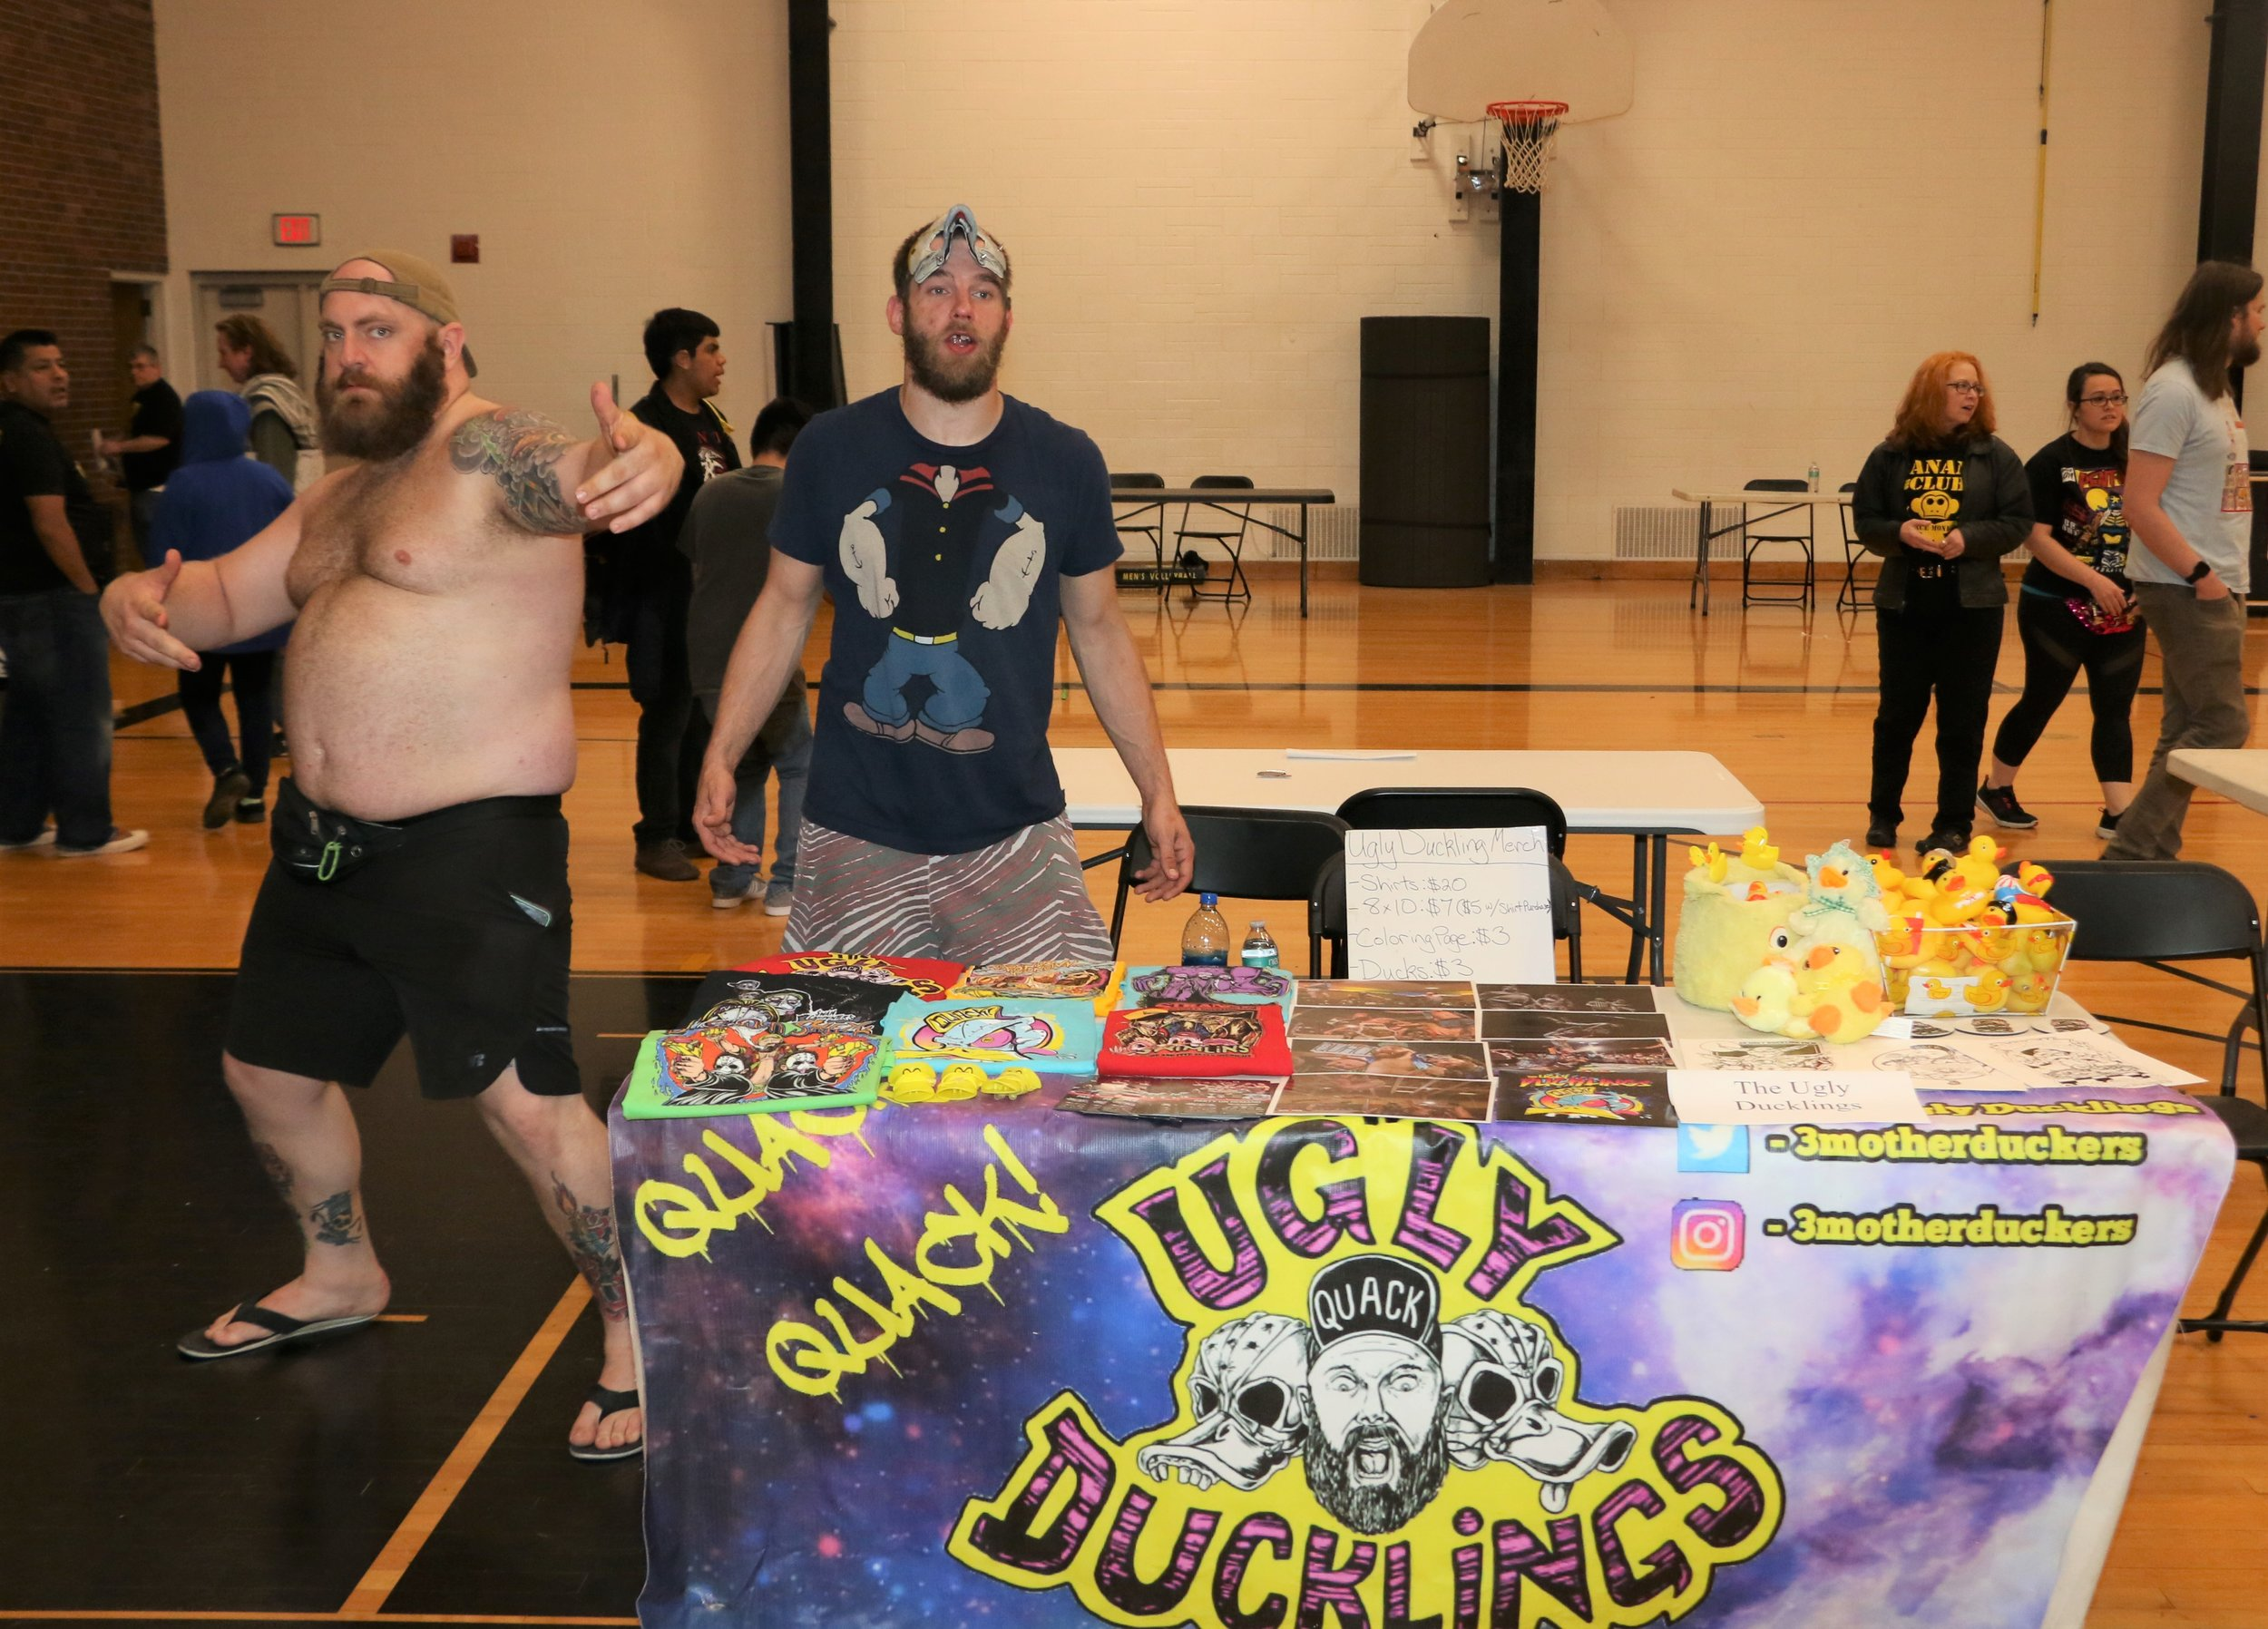 The Ugly Duckings man their merchandise table during intermission.